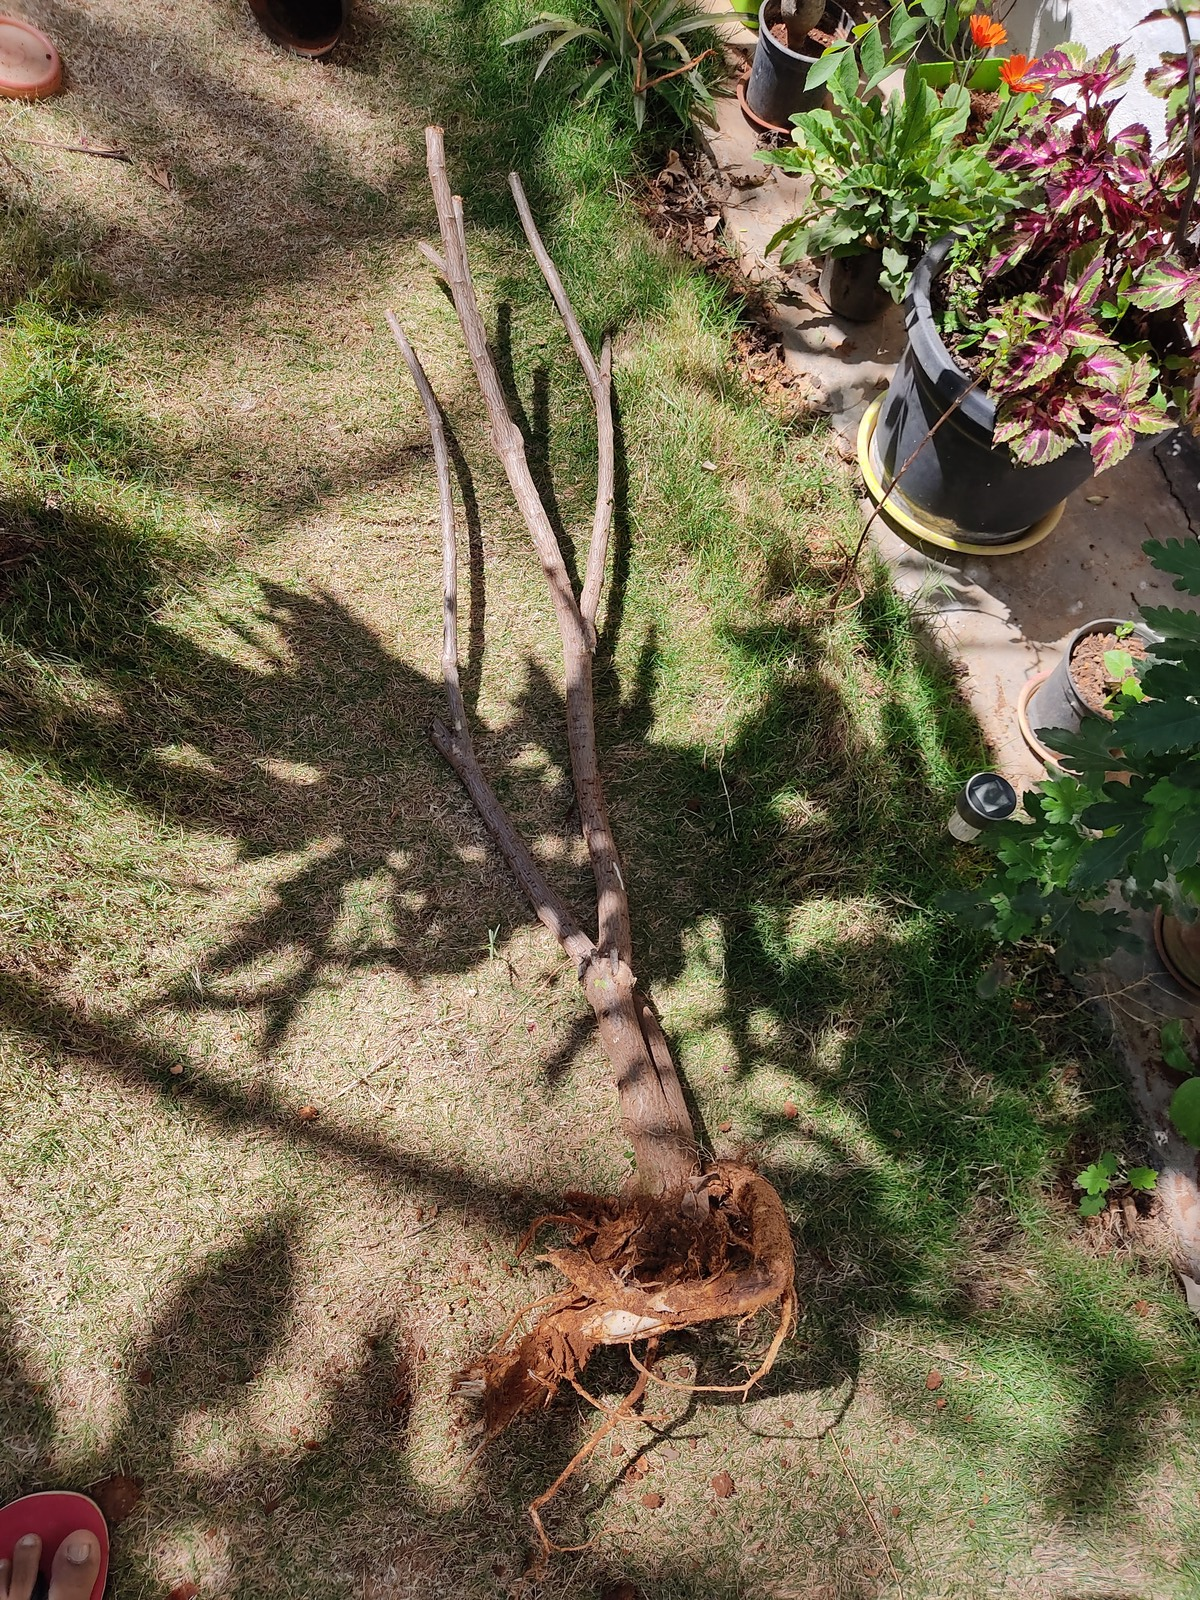 Dominating Plant Uprooted